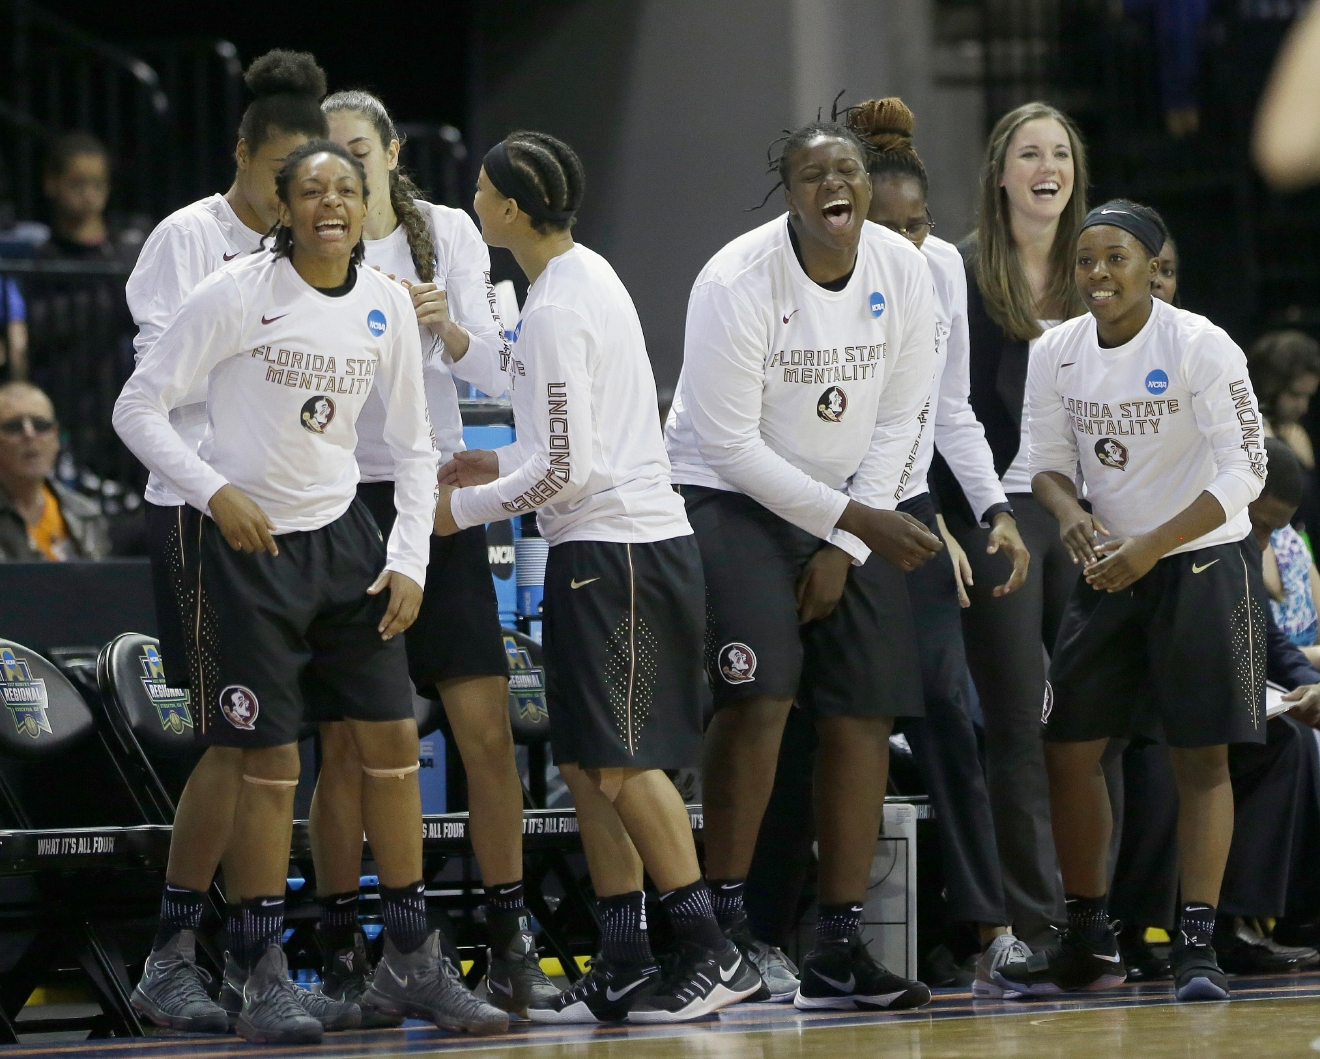 Florida State players celebrate in the closing moments of their 66-53 win over Oregon State in a regional semi-final round game of an NCAA college basketball tournament , Saturday, March 25, 2017, in Stockton, Calif. (AP Photo/Rich Pedroncelli)